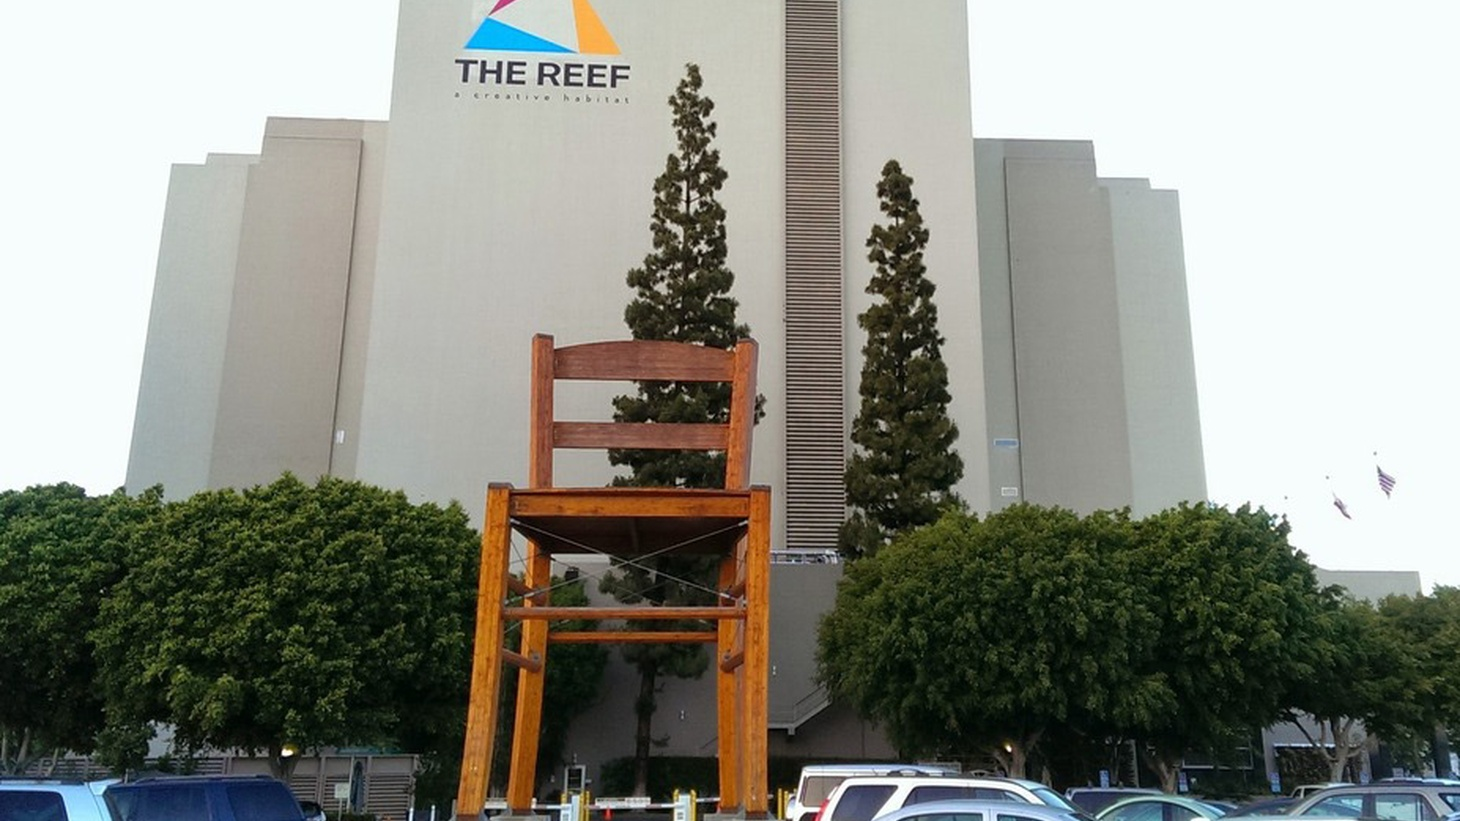 The controversial South LA development project called The Reef has been approved, and community activists are concerned about gentrification and displacement.